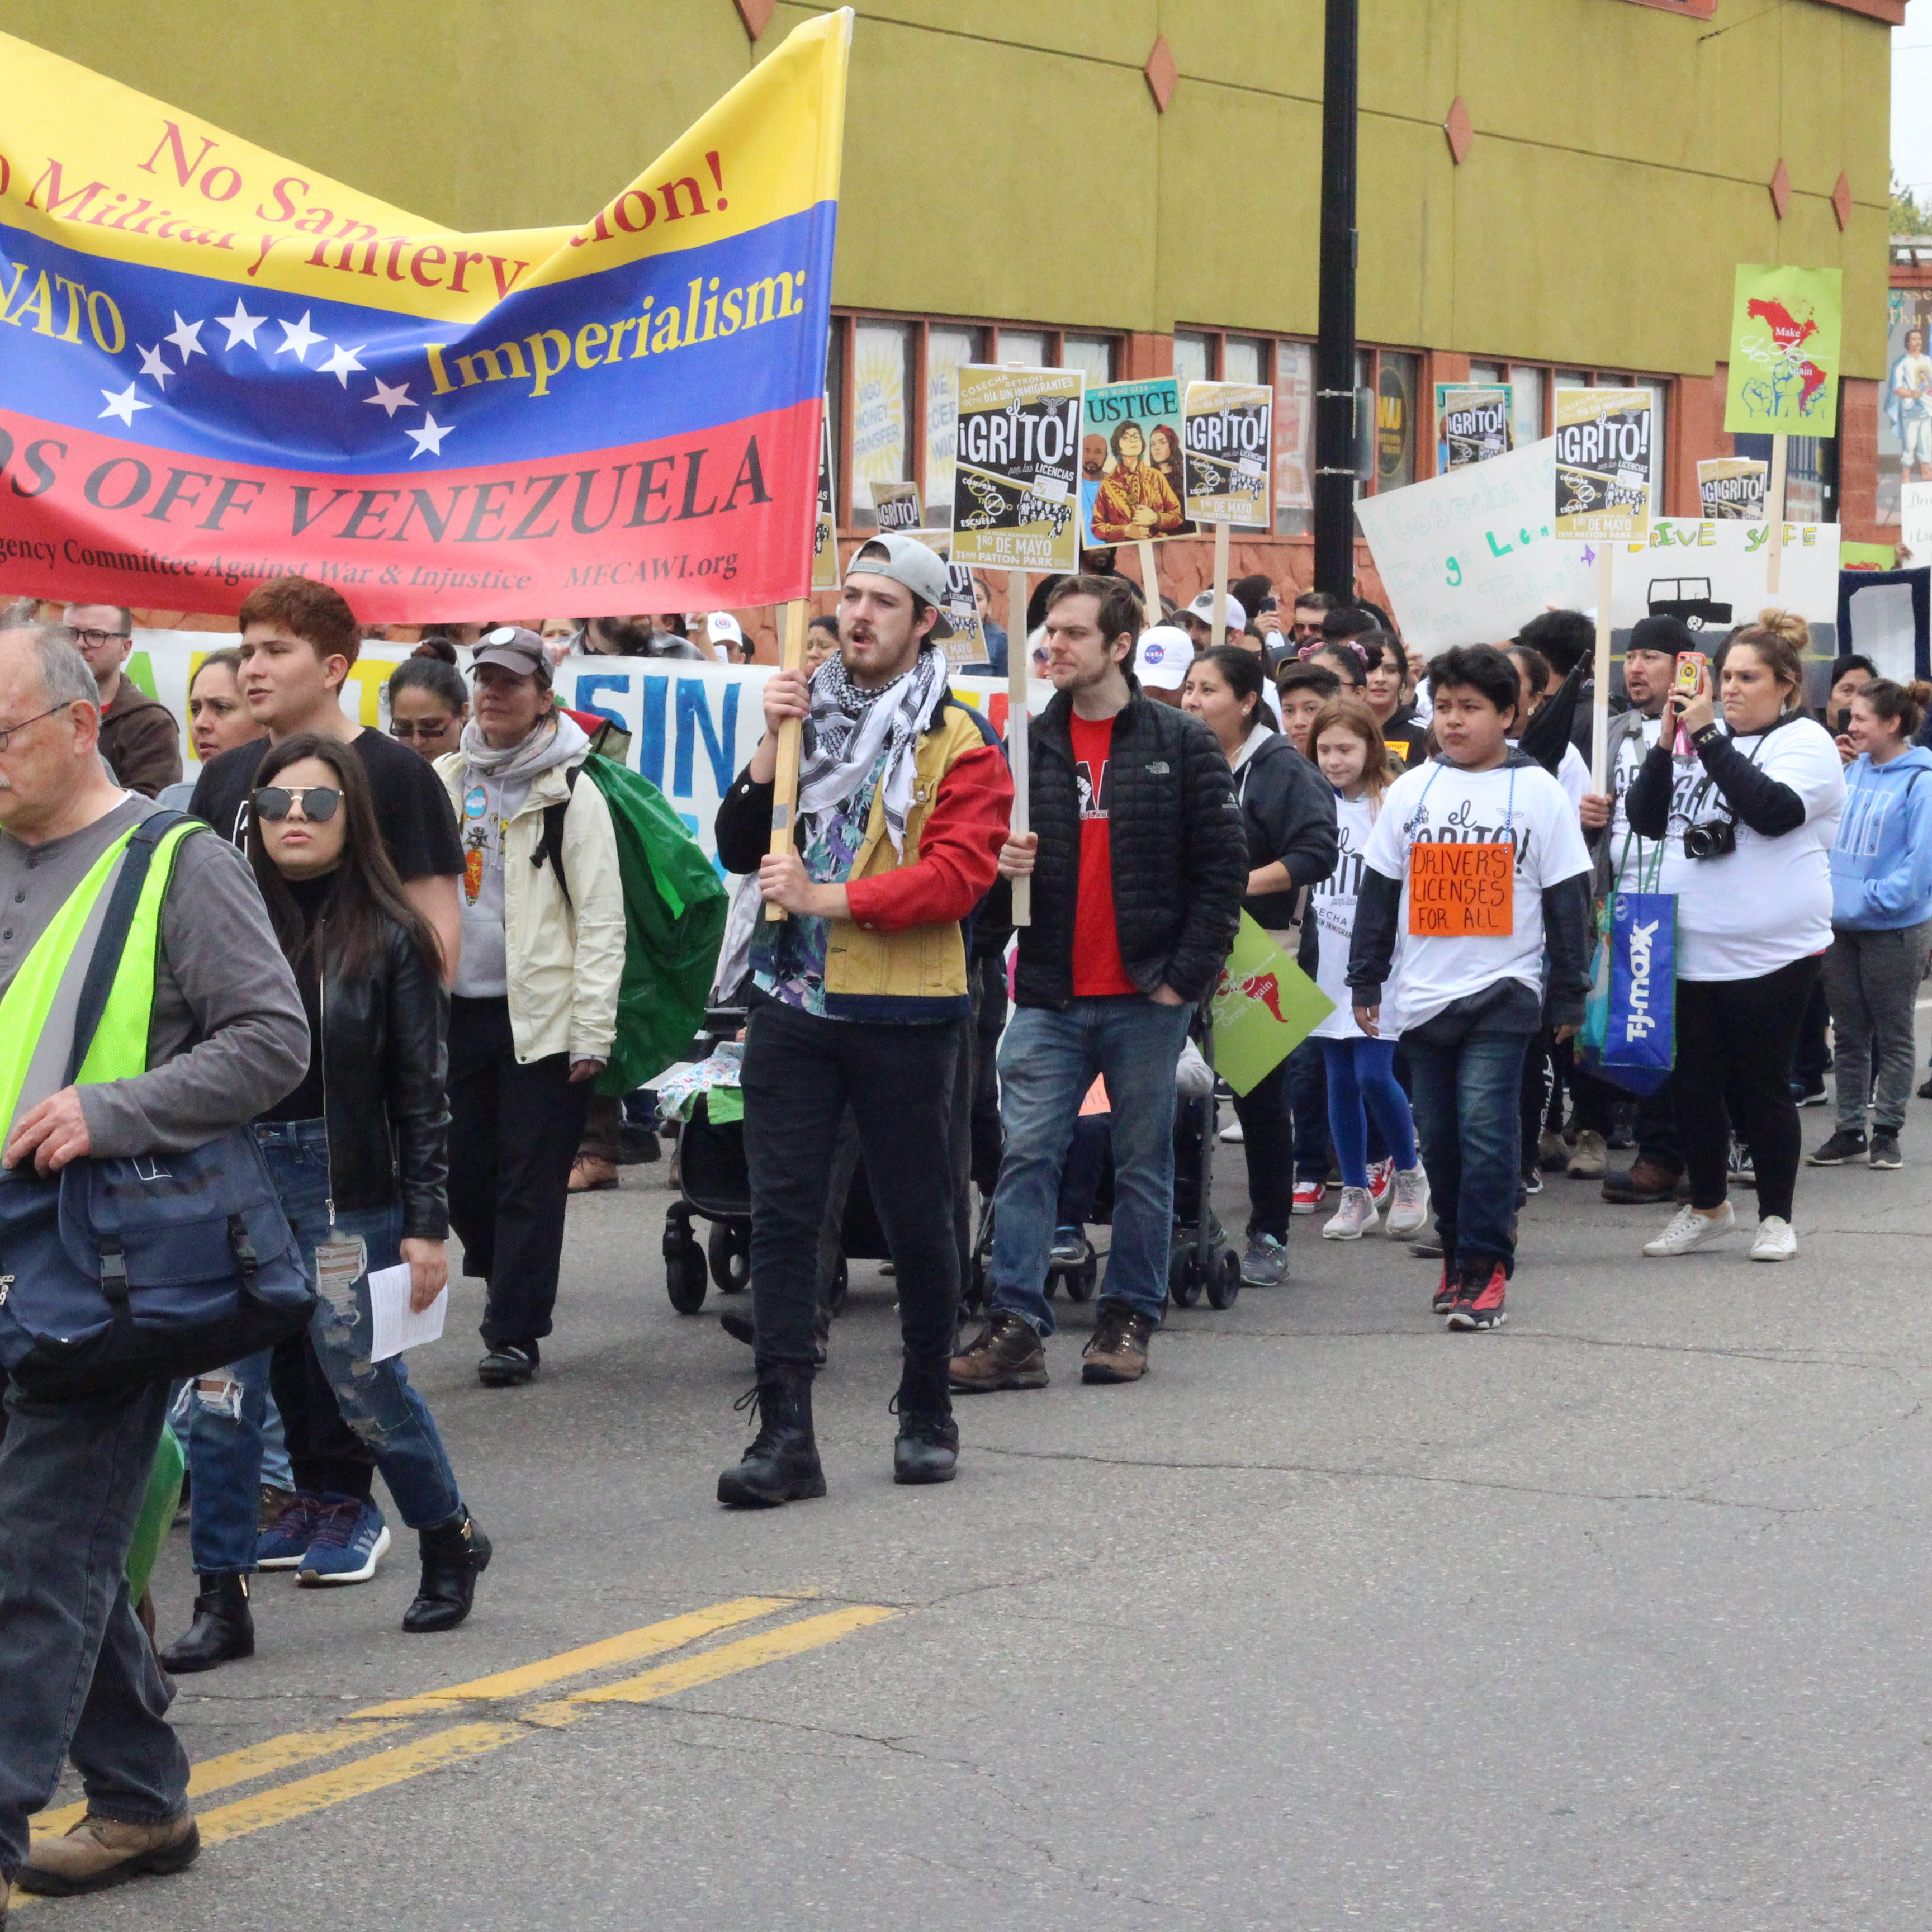 Detroit protesters march to demand licenses for undocumented immigrants